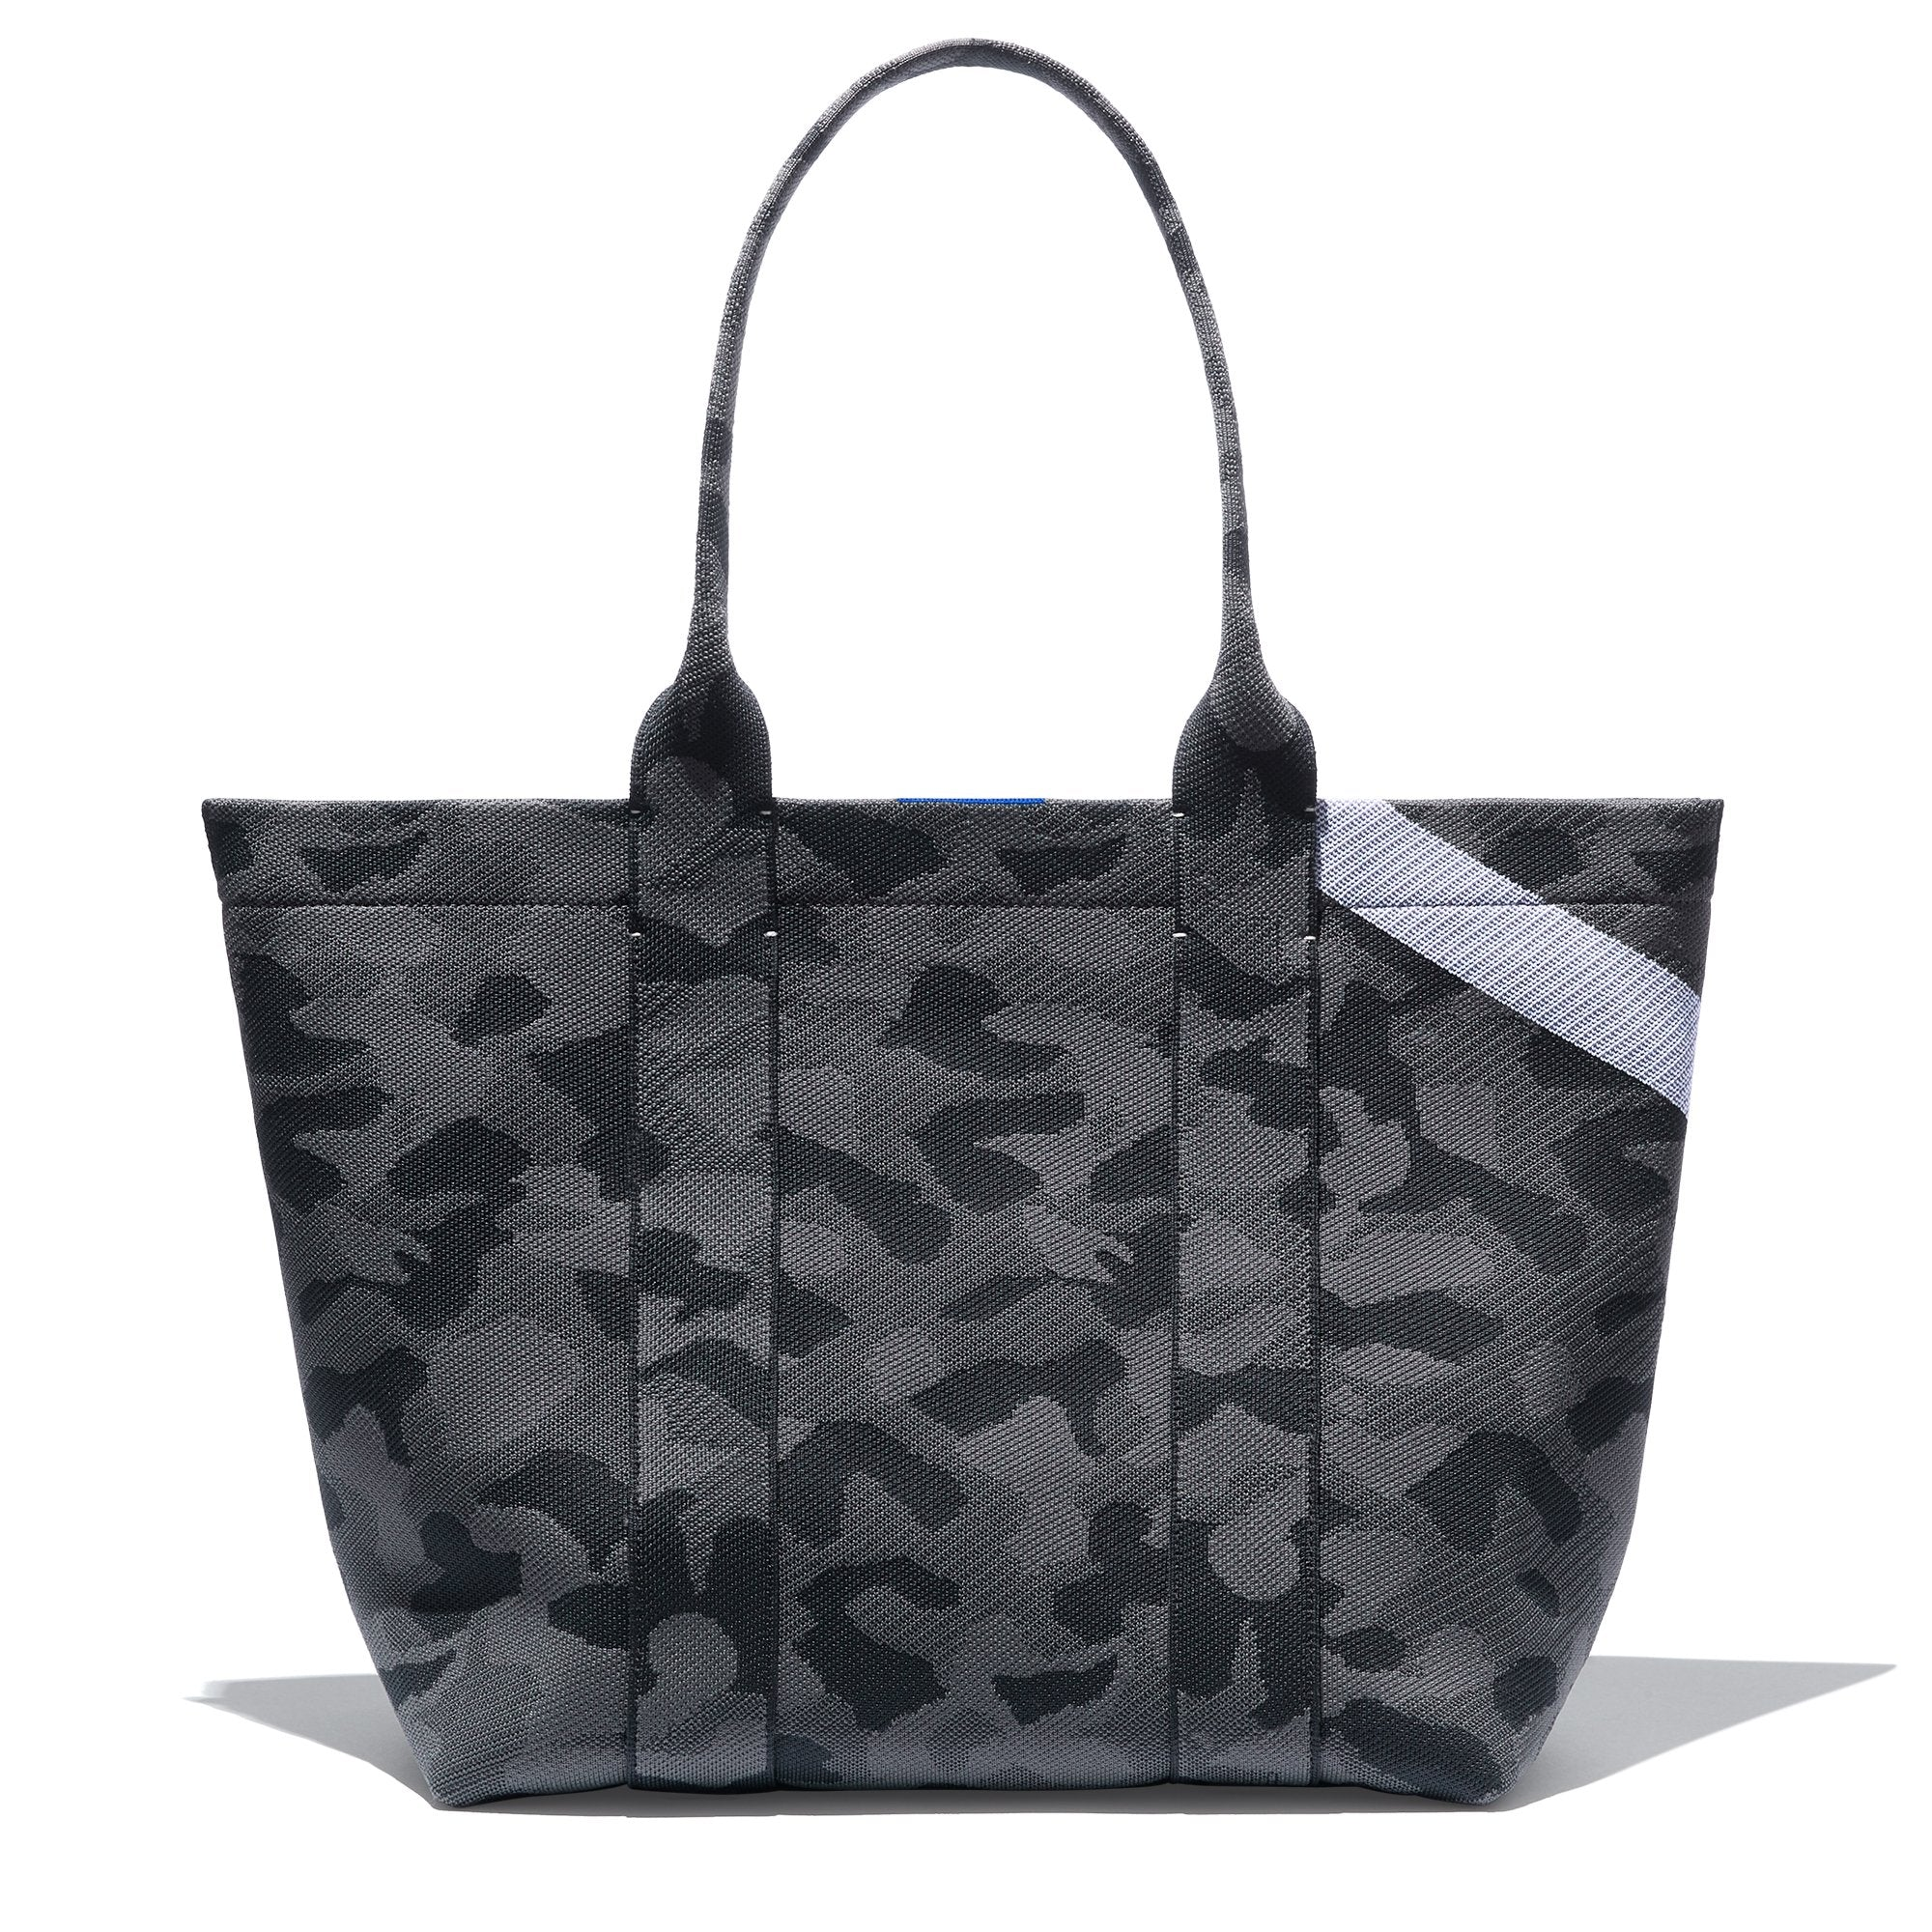 The Essential Tote in Slate Camo shown from the front.